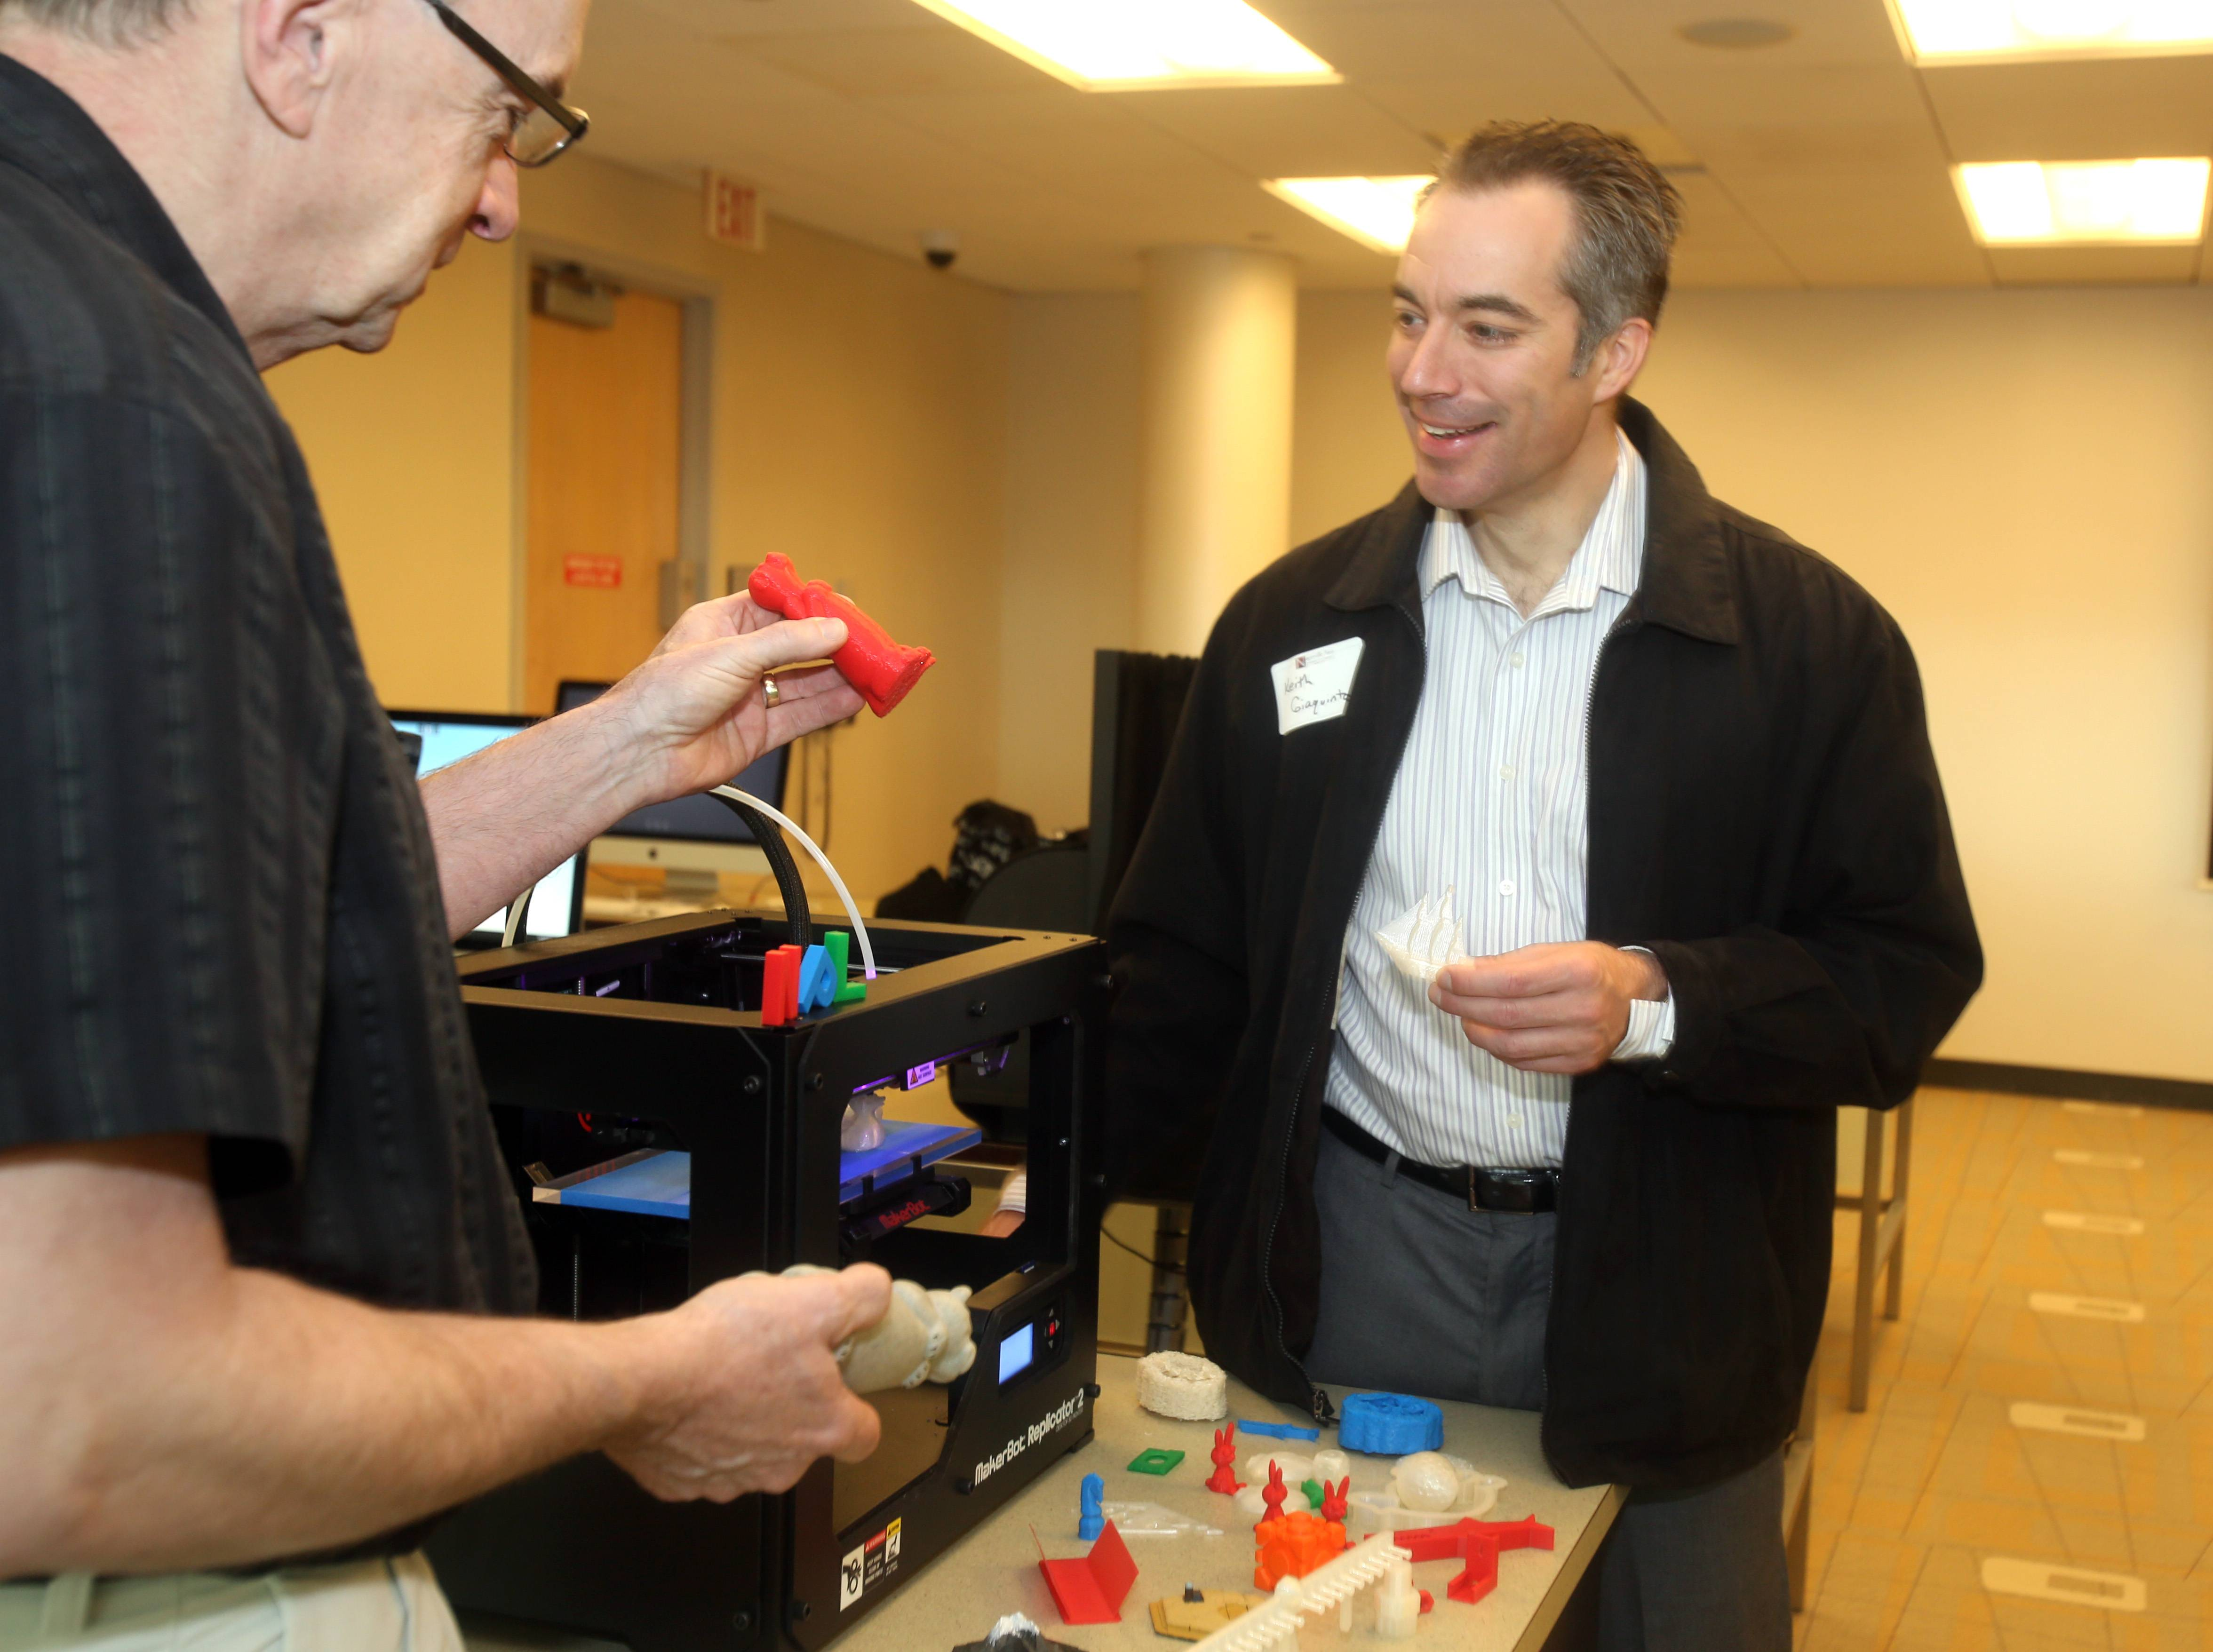 Naperville Public Library help desk employee Jeff Smallwood explains the new 3-D printer in the Idea Lab at the 95th Street Library to chiropractor Keith Giaquinto, who toured the new lab Thursday morning with other members of the Naperville Area Chamber of Commerce.